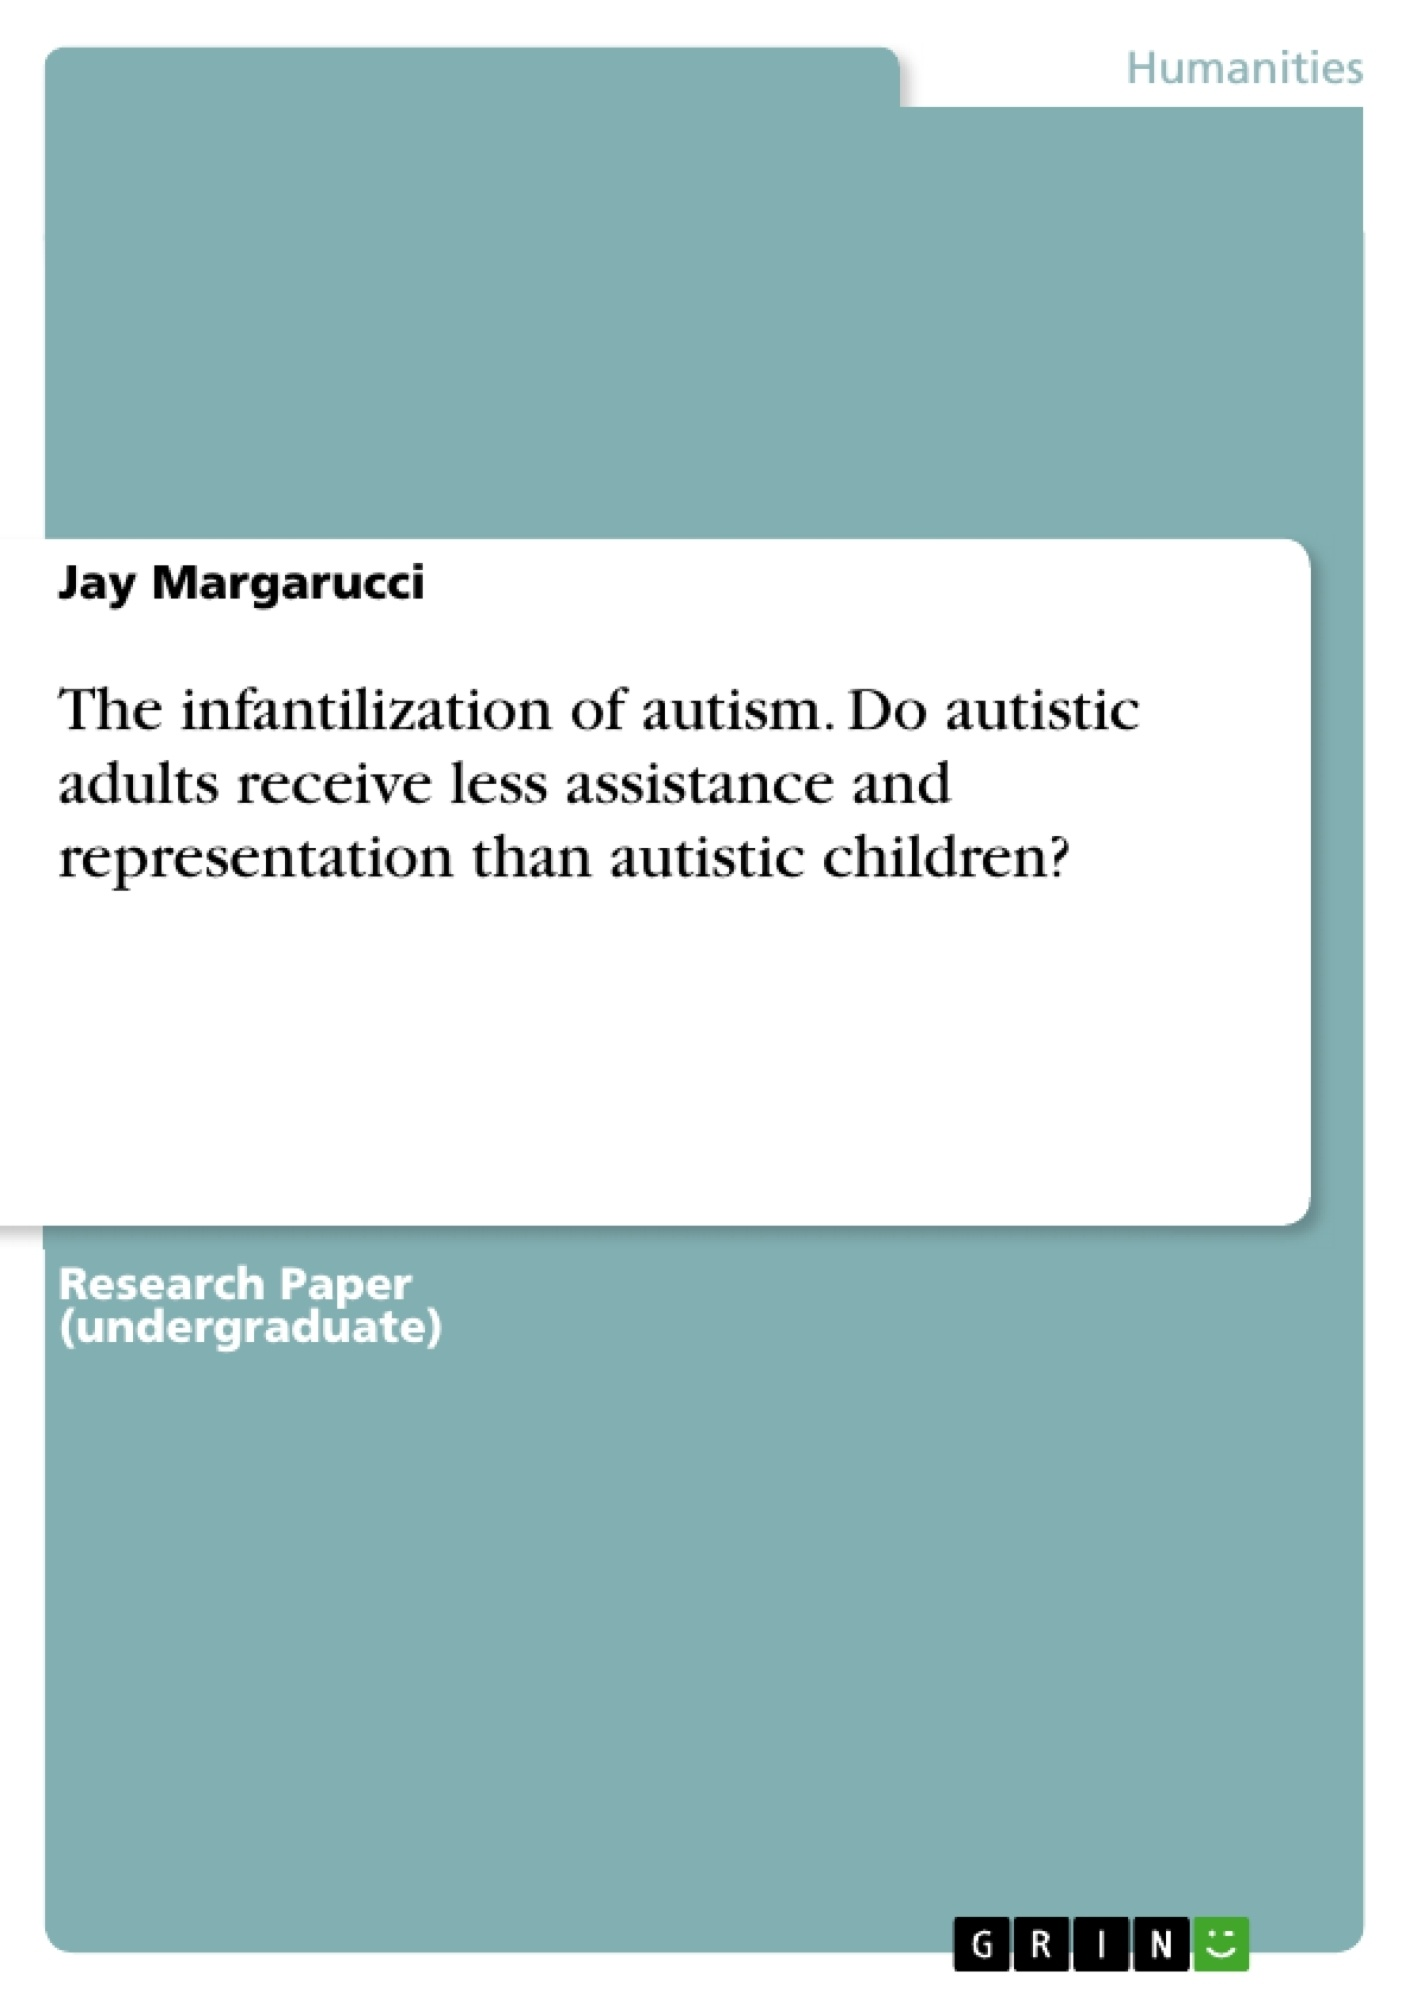 The Next Hot Topic In Autism Research >> Grin The Infantilization Of Autism Do Autistic Adults Receive Less Assistance And Representation Than Autistic Children